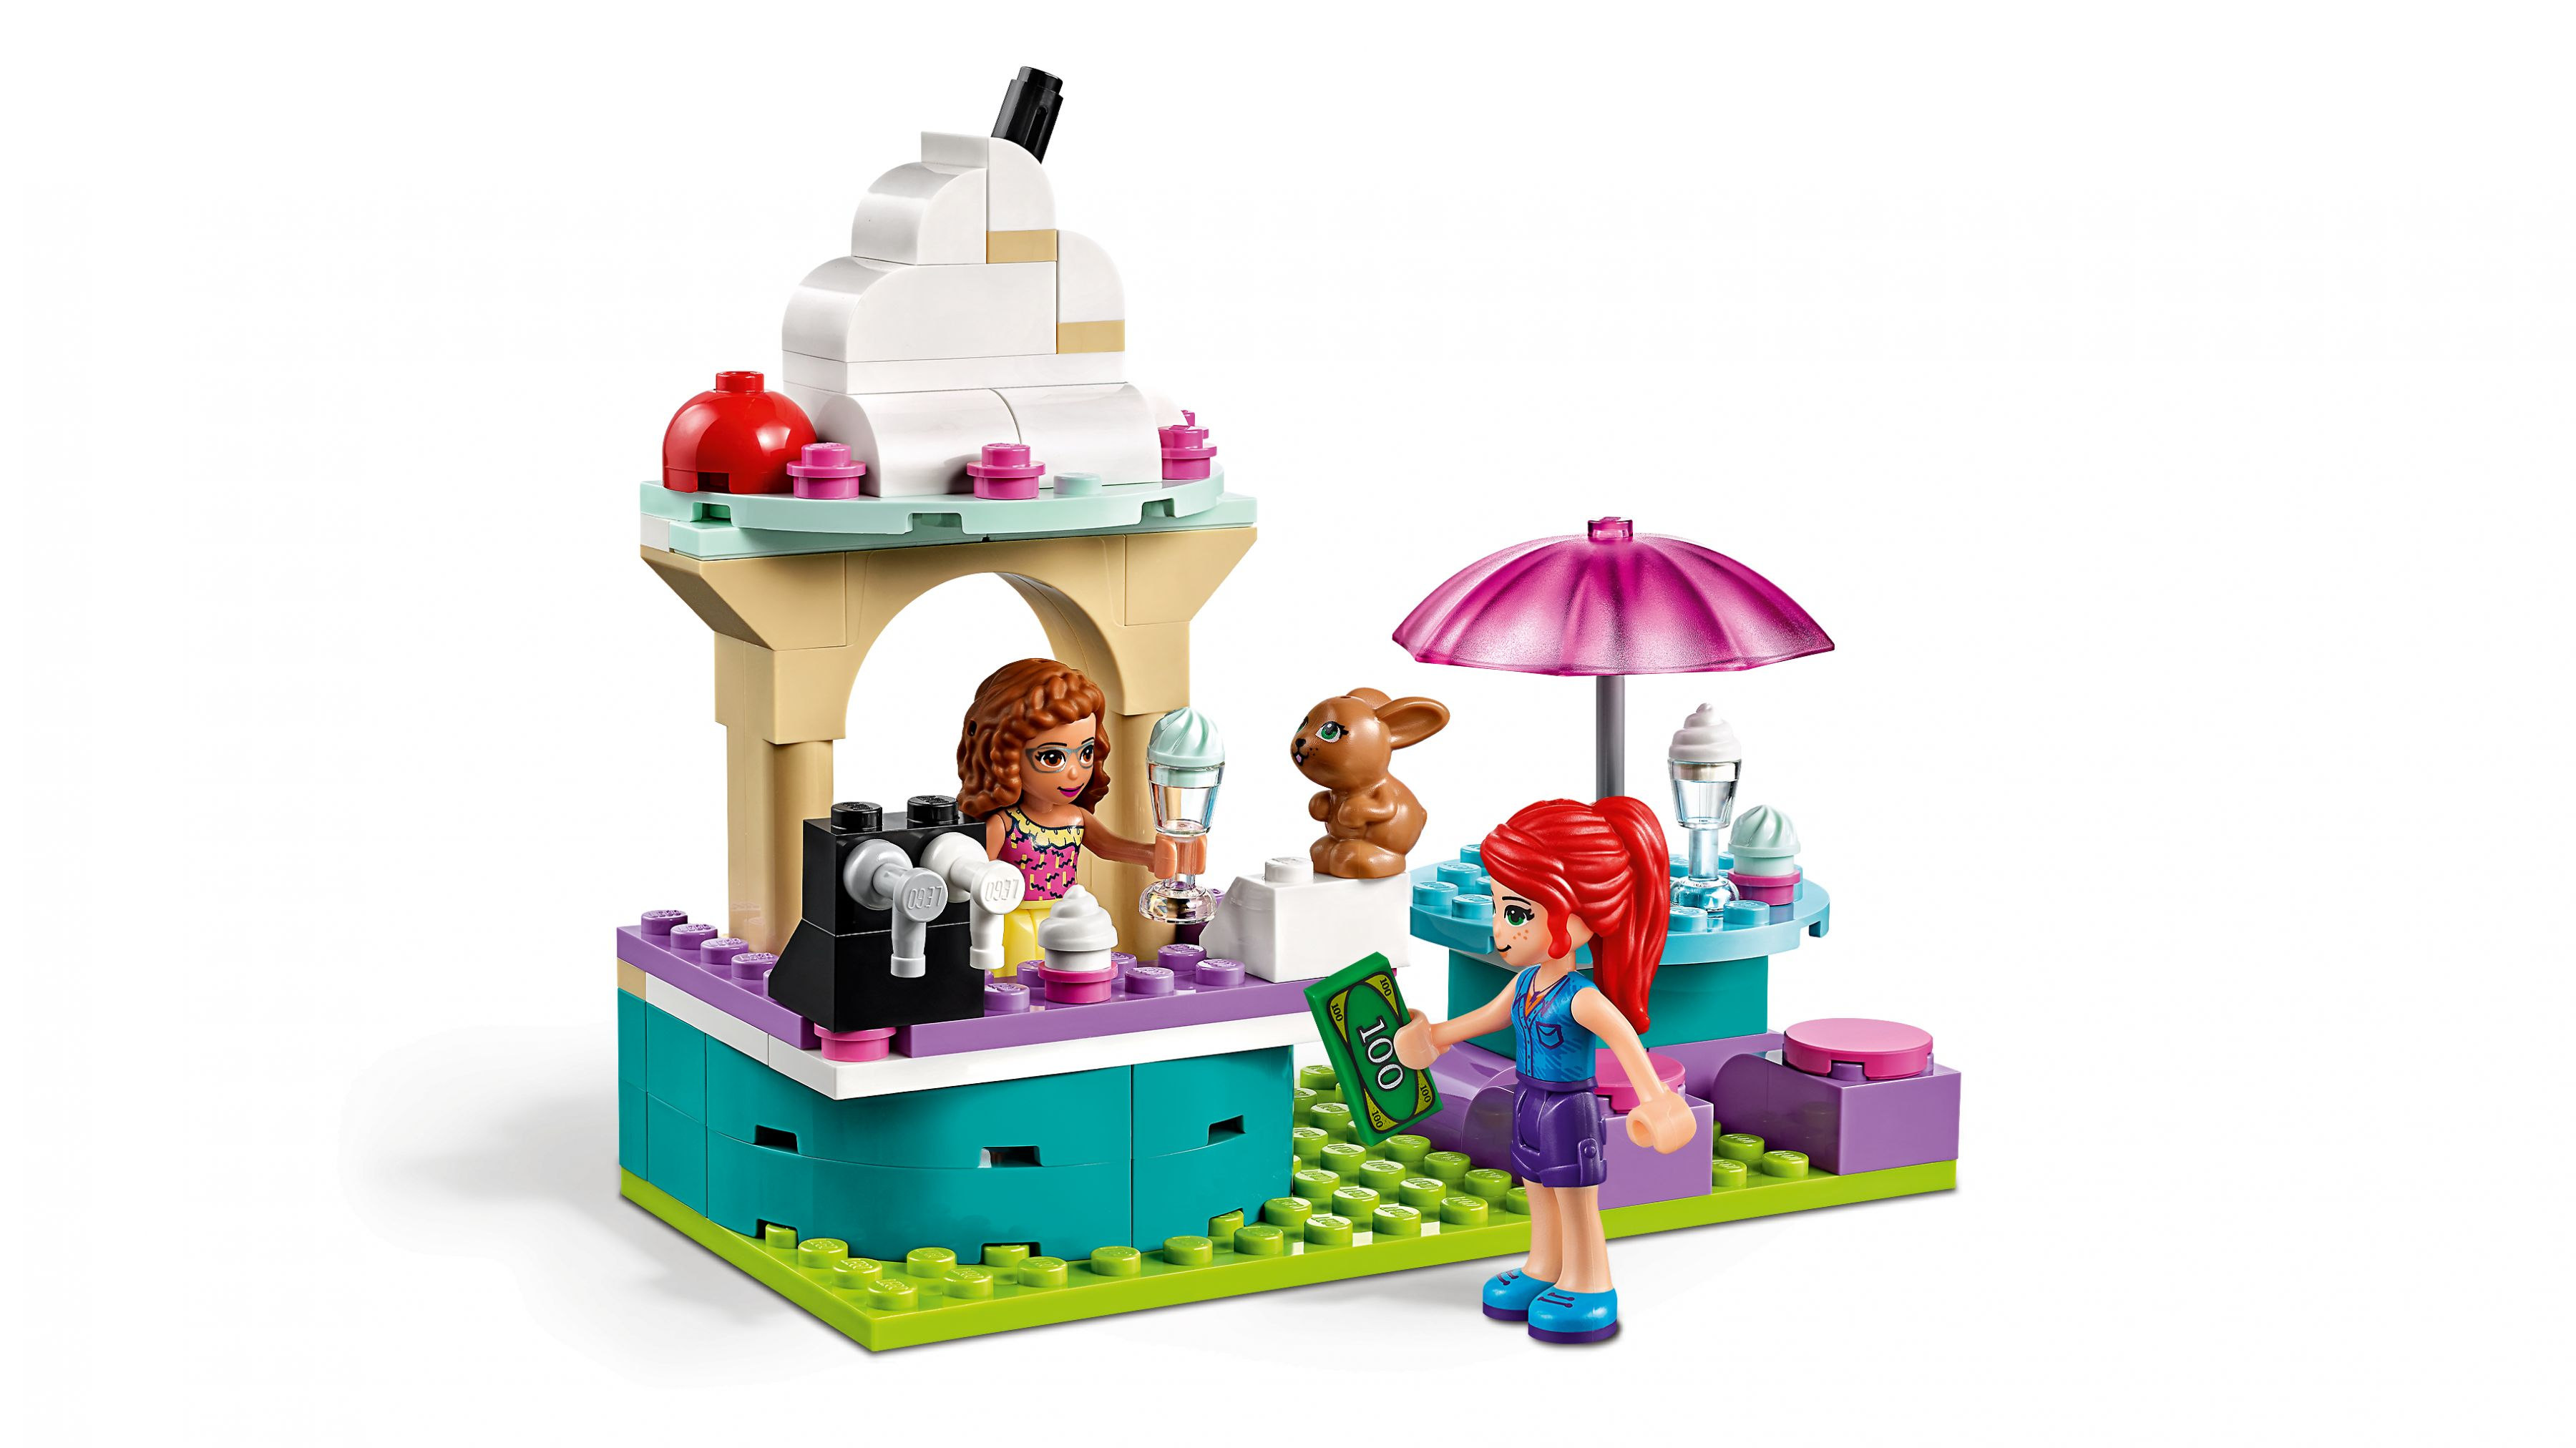 LEGO Friends 41431 Heartlake City Steinebox LEGO_41431_alt6.jpg